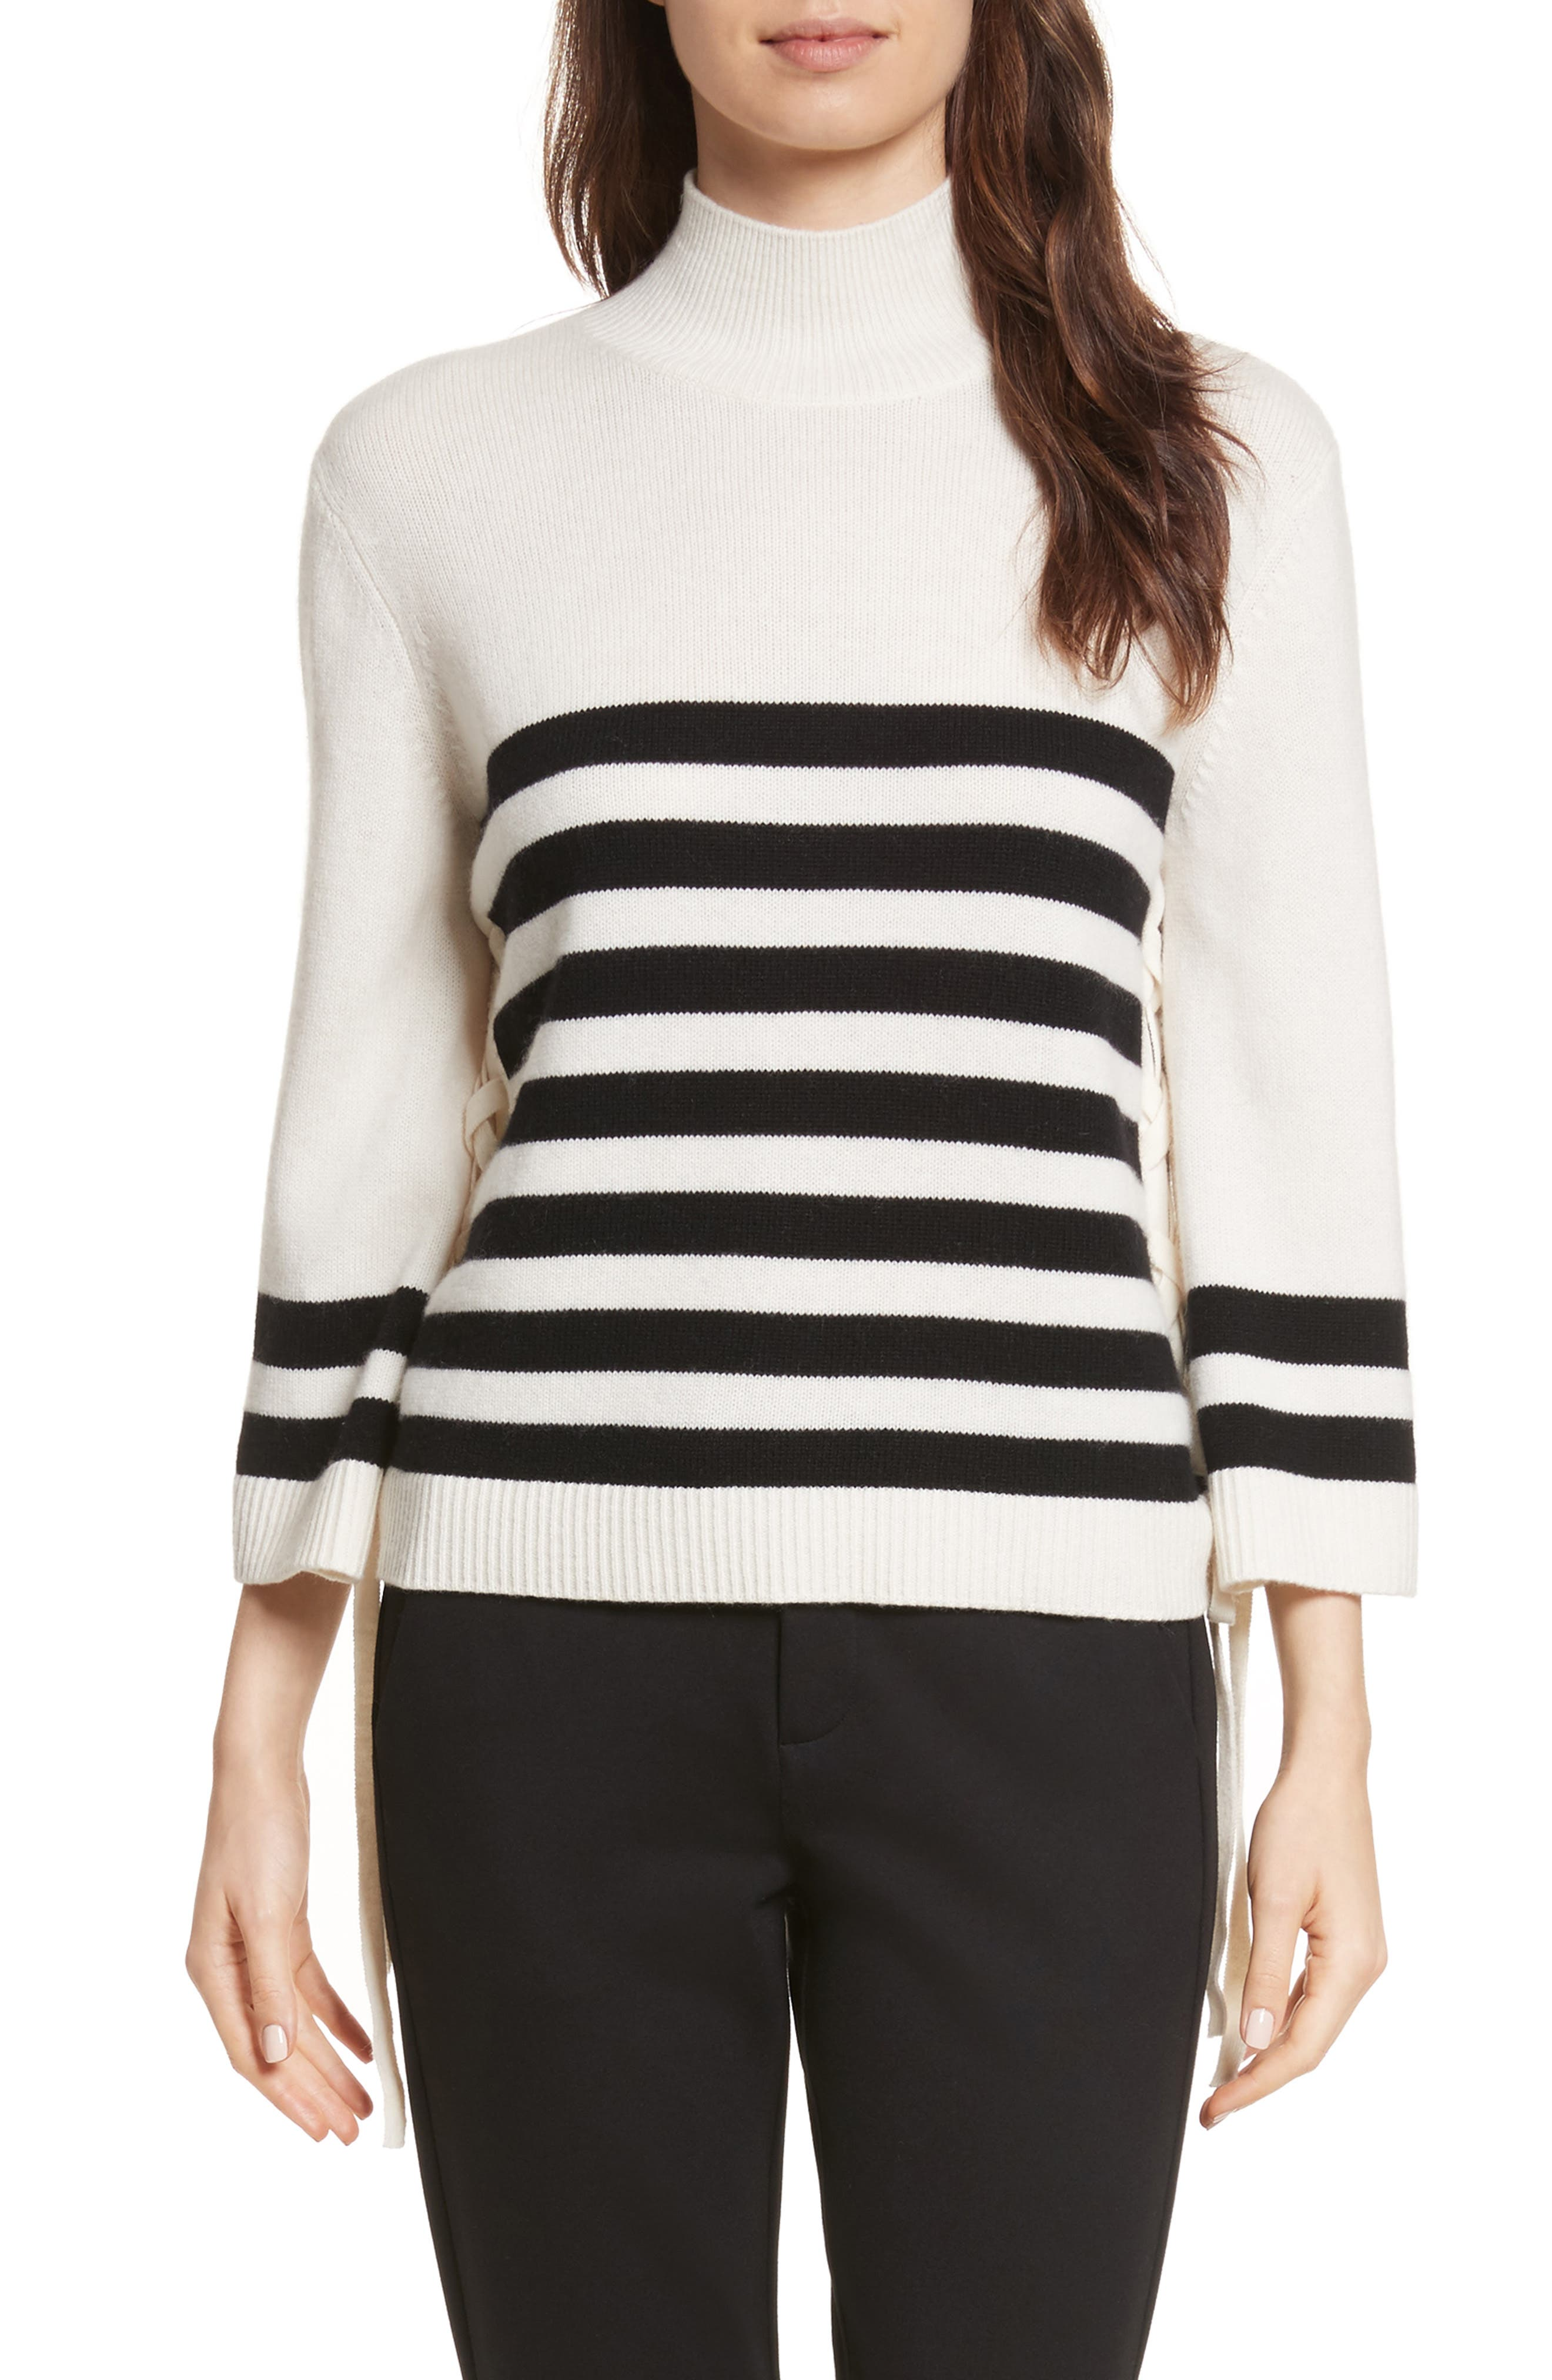 Joie Lantz Mariner Sweater